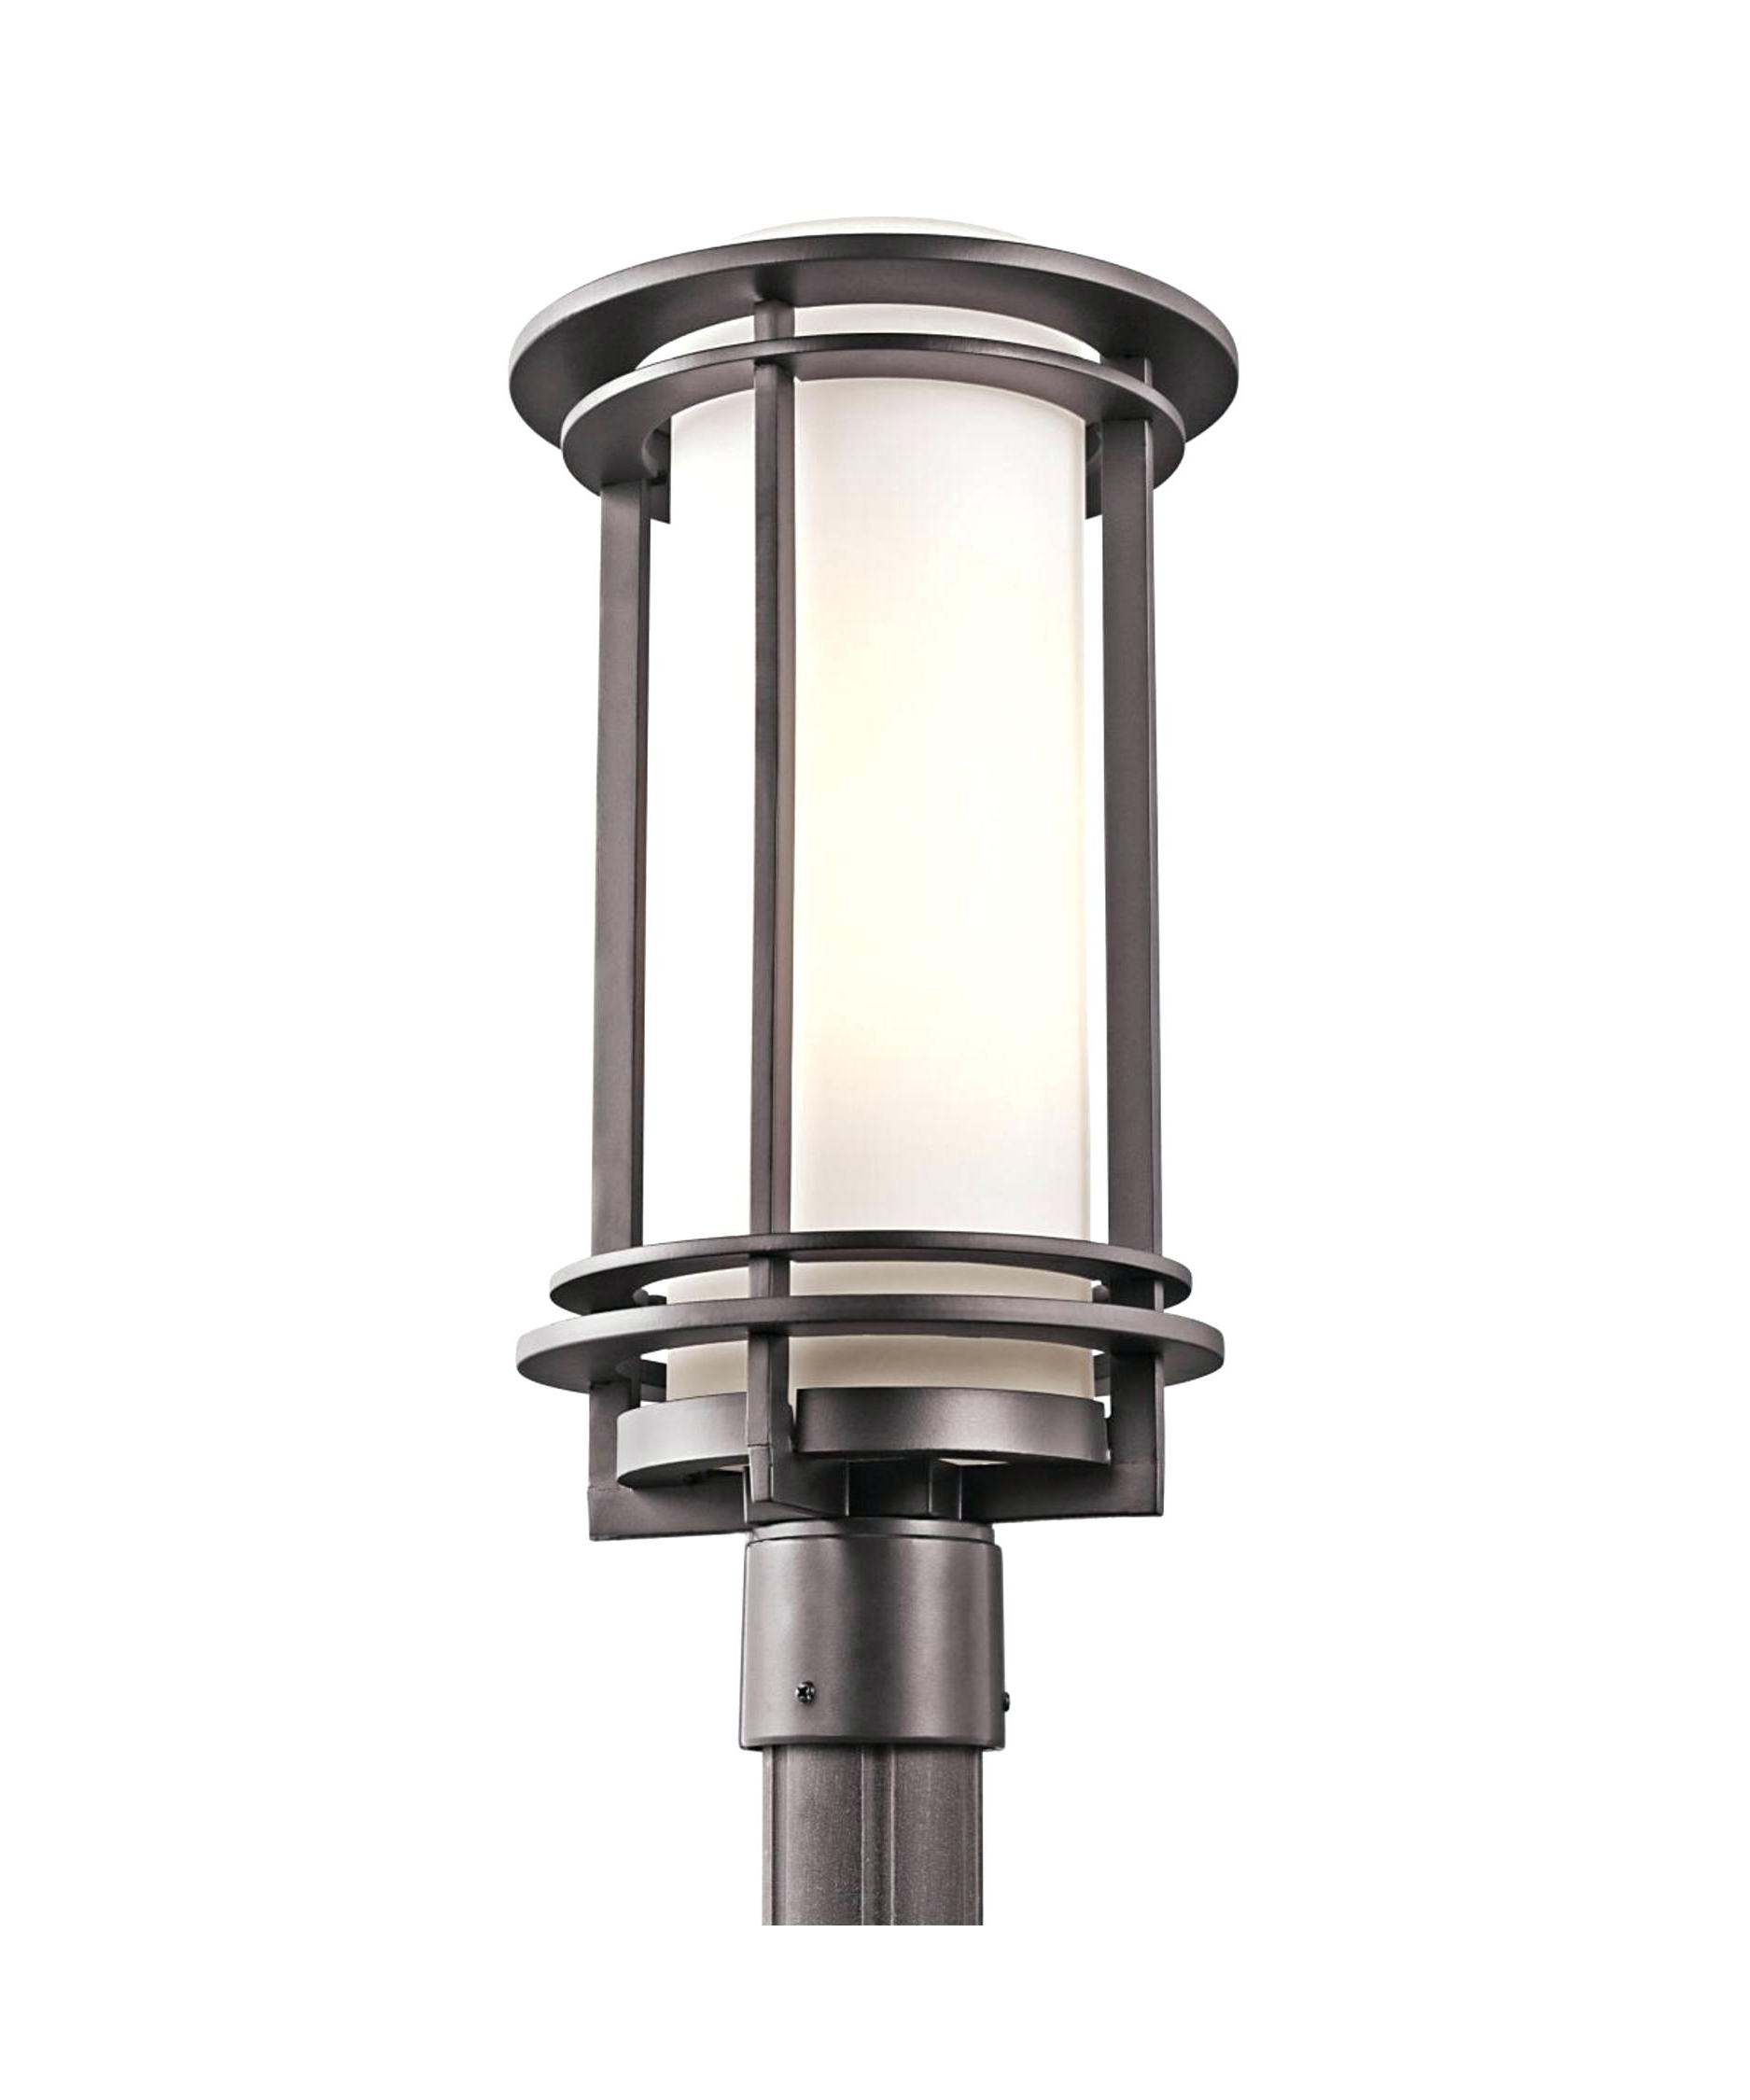 Favorite Yard Lamps Most Out Of This World Outdoor Solar Lamp Post Solar With Outdoor Lanterns On Post (Gallery 14 of 20)